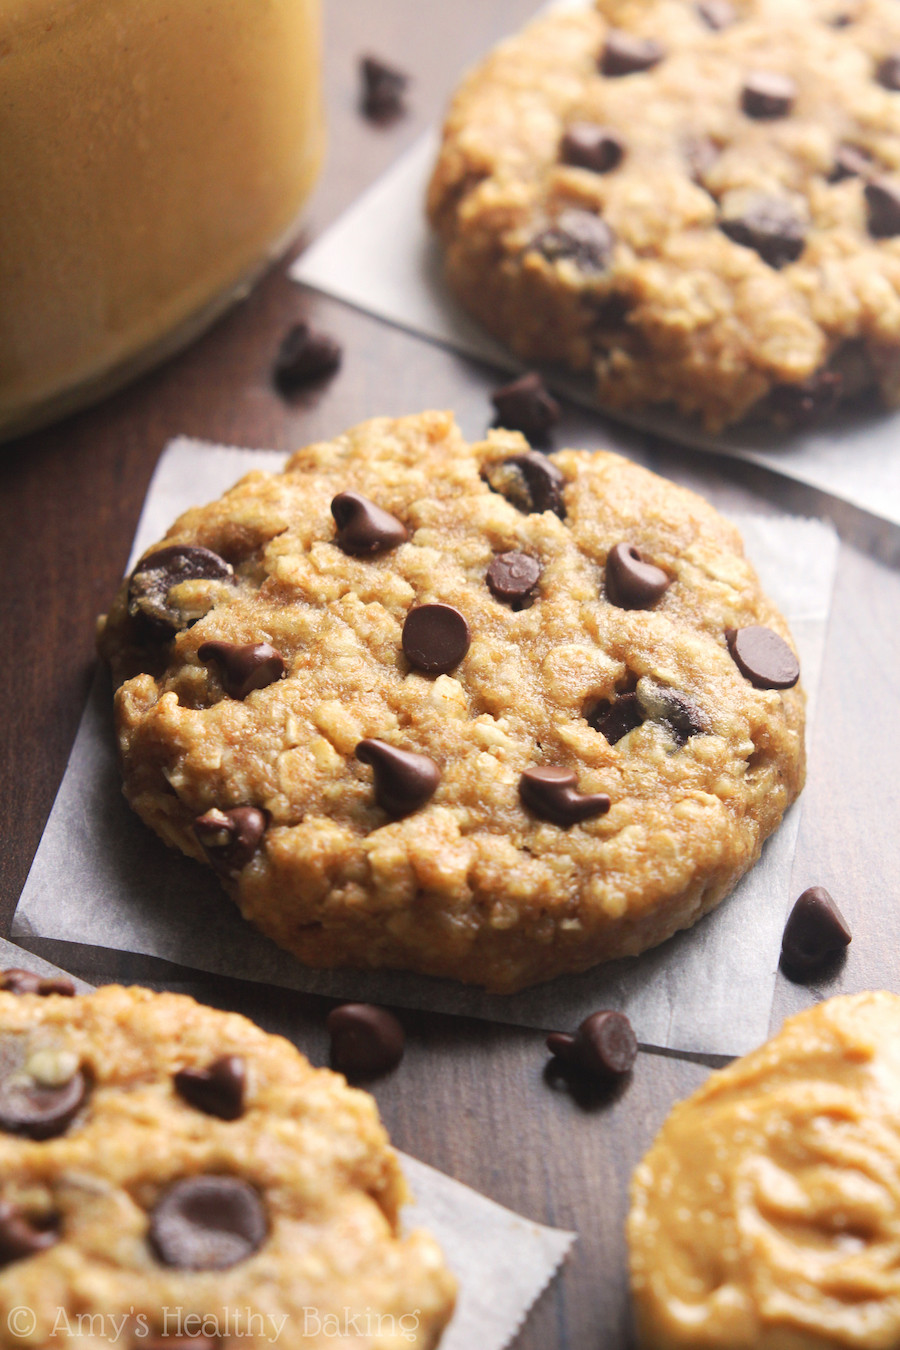 Healthy Chocolate Peanut Butter Cookies  Chocolate Chip Peanut Butter Oatmeal Cookies Recipe Video